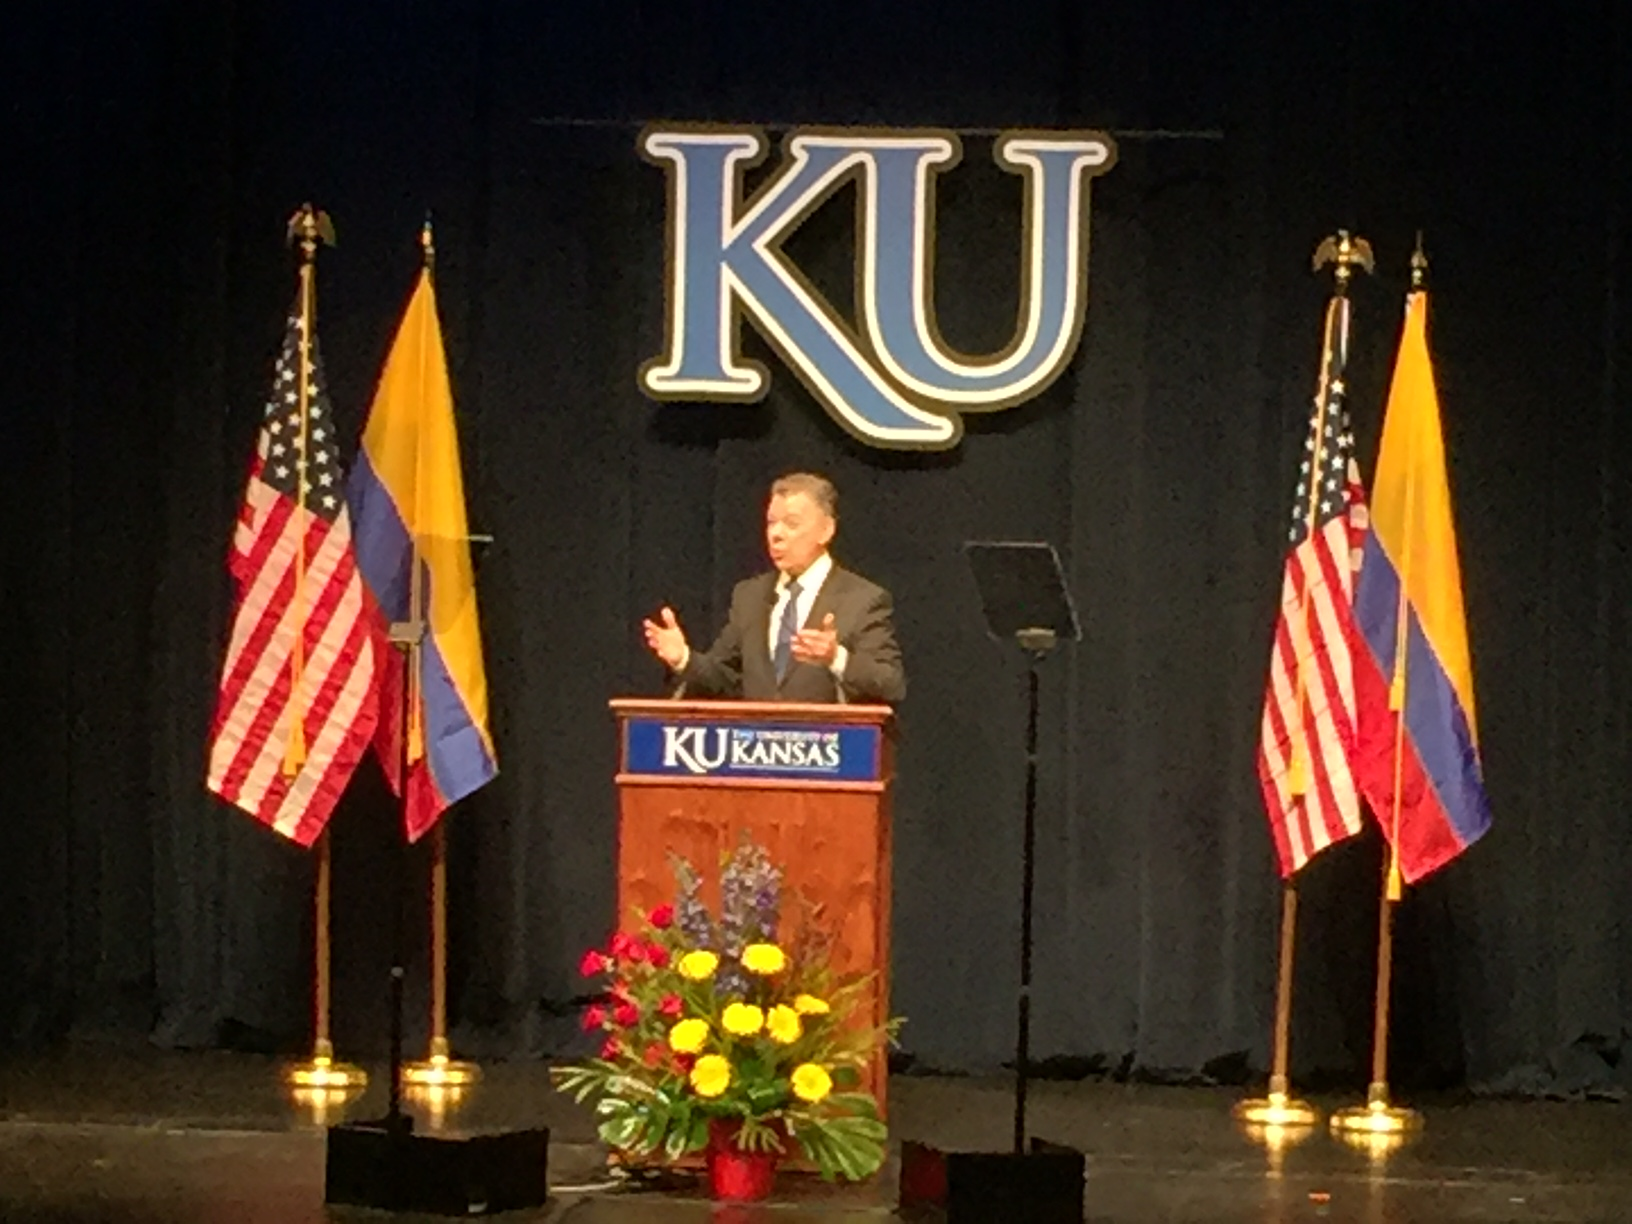 Colombian President Juan Santos speaking at KU's Lied Center Tuesday night, where he received an honorary doctorate for his efforts to bring peace to his war-torn country. (Blurry photo by J. Schafer)